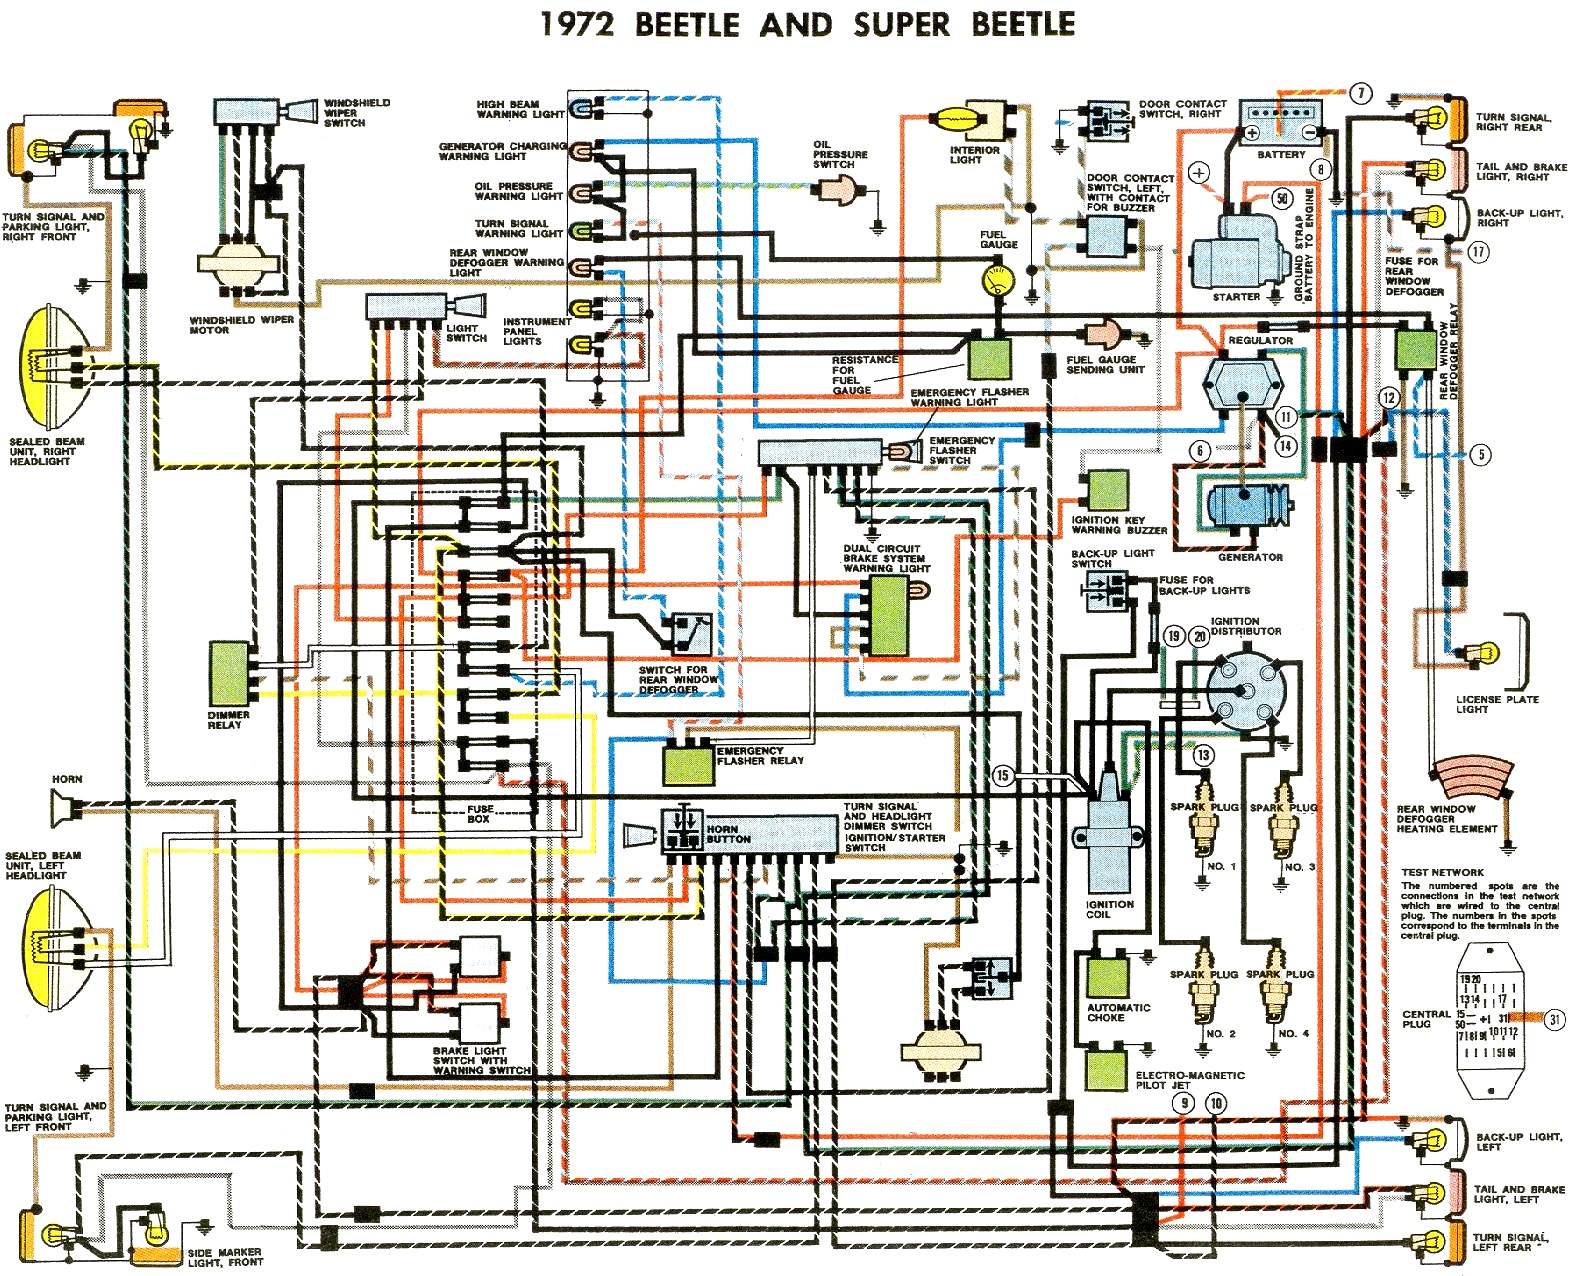 bug_72 vw mk1 wiring diagram 56 vw bug wiring diagram \u2022 wiring diagrams Super Beetle Starter at gsmx.co